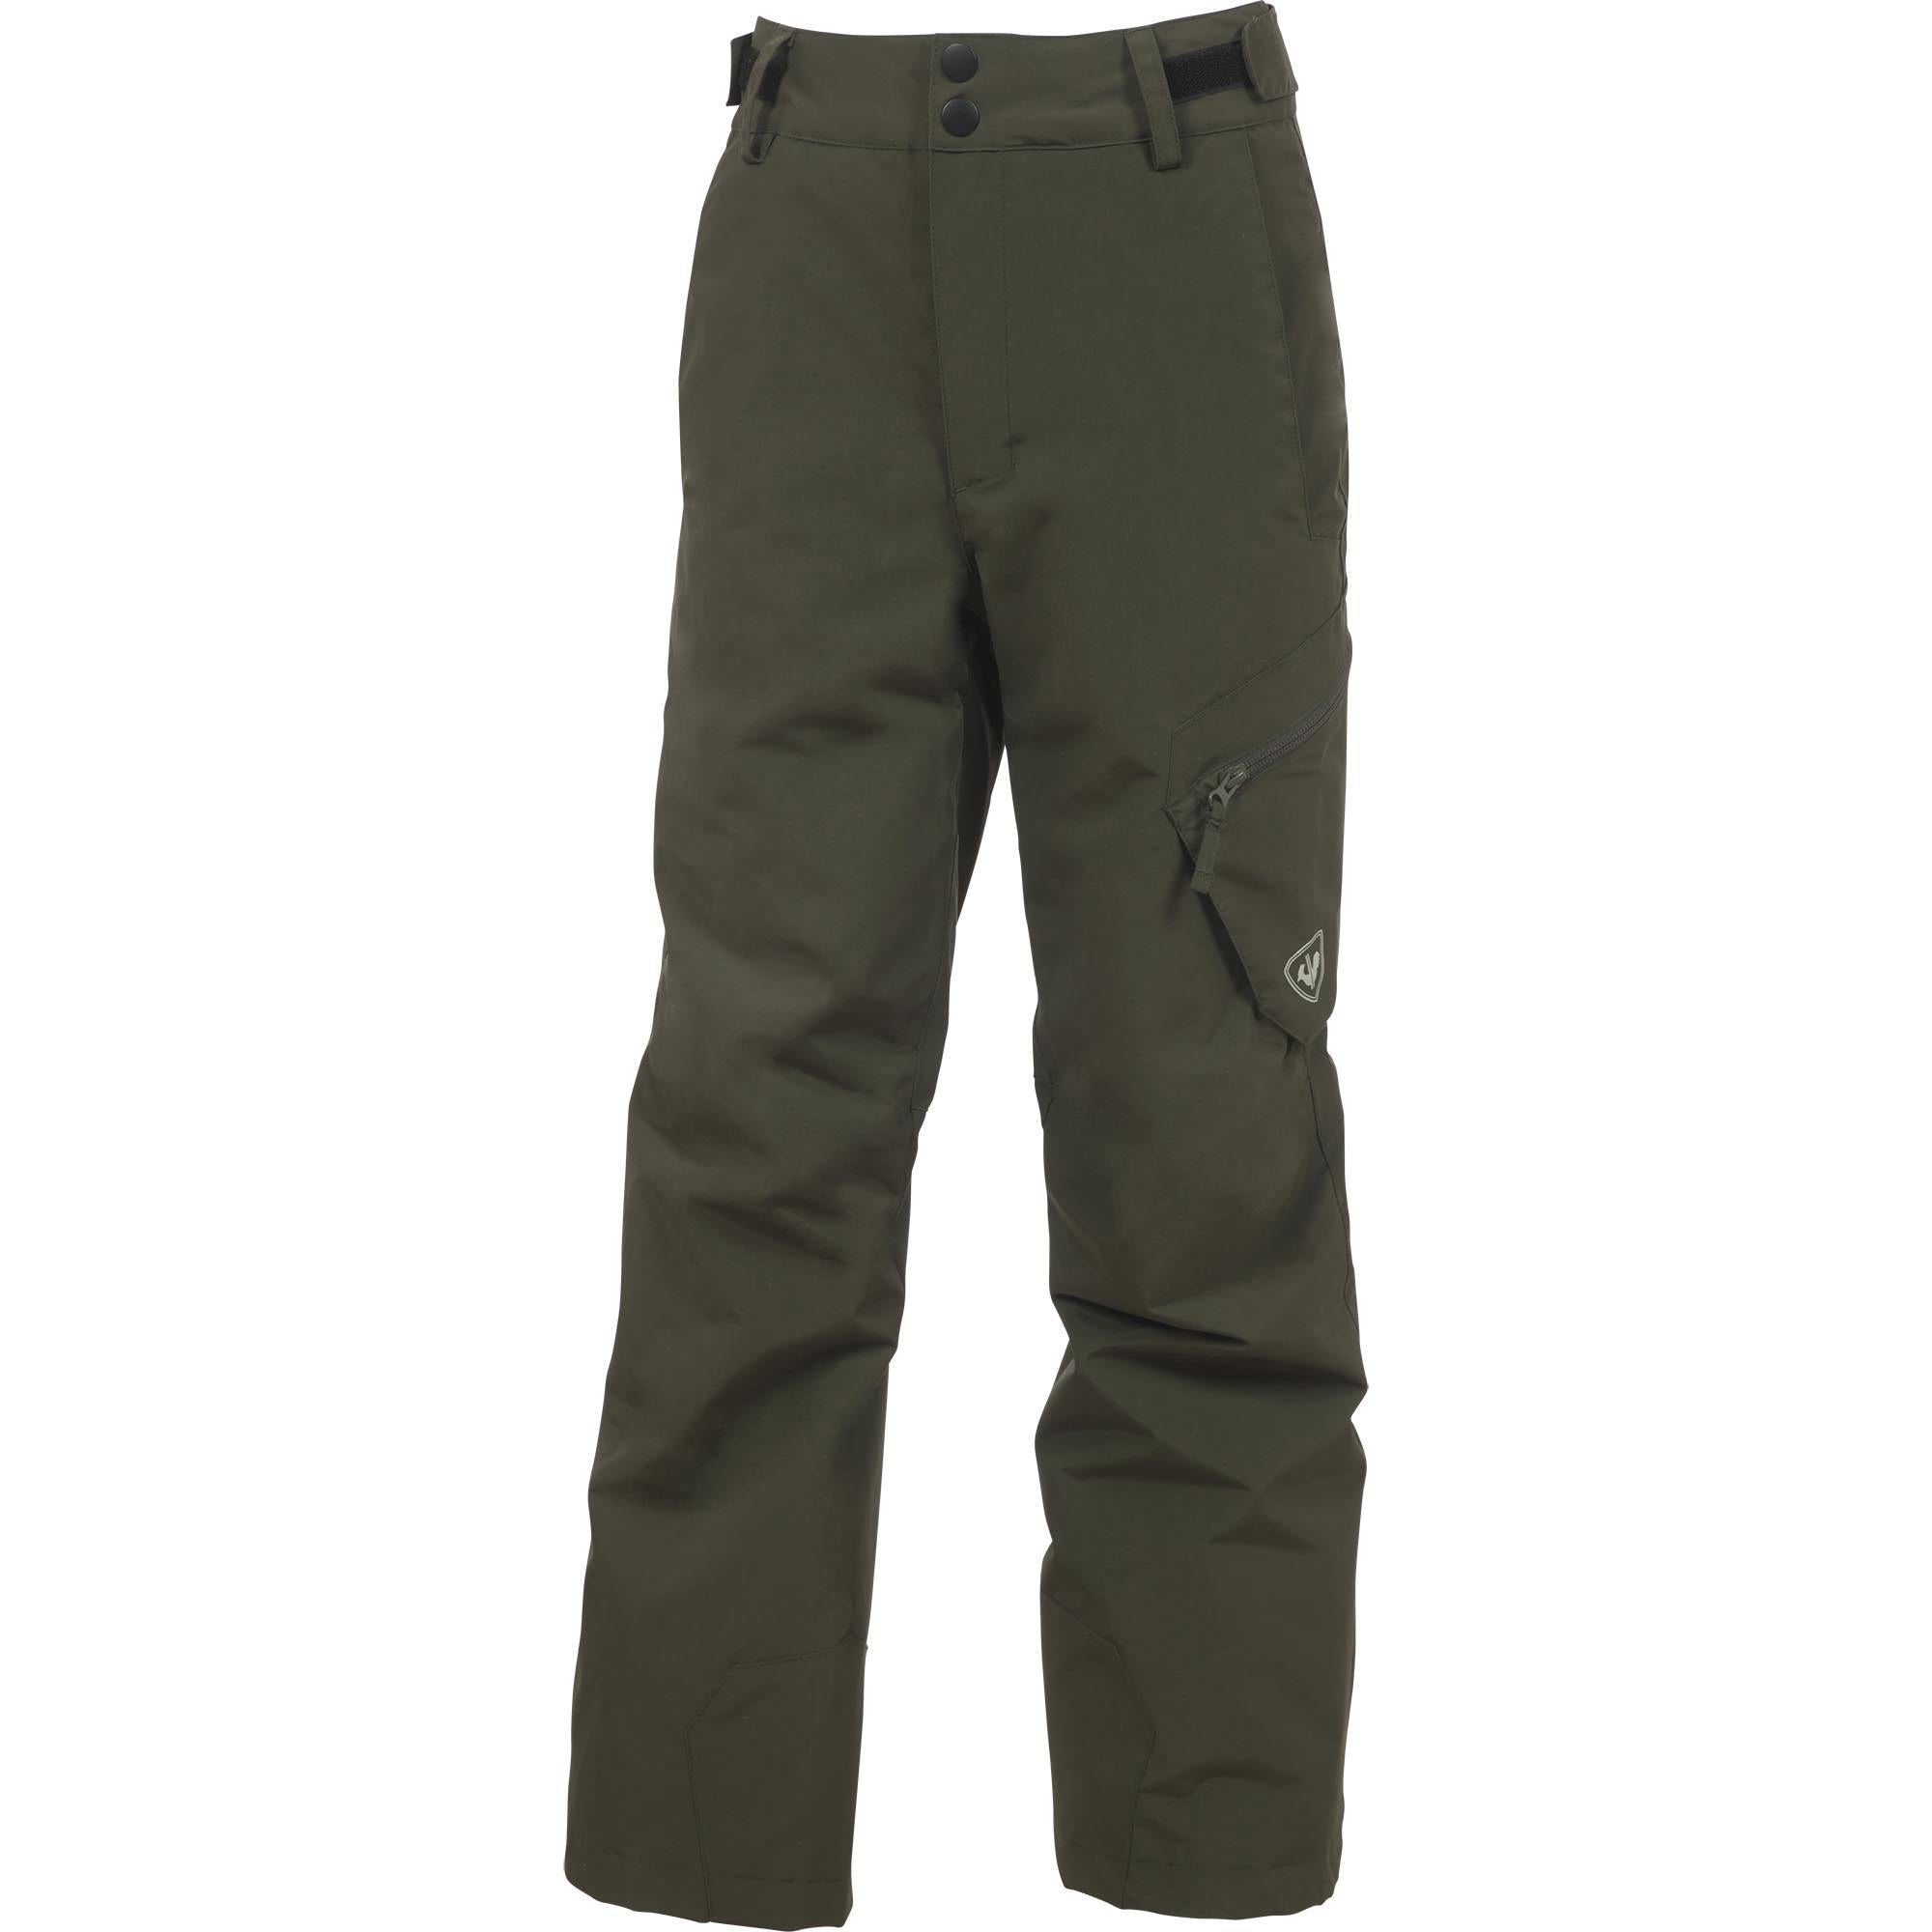 a4548f6f2 Rossignol Boys Ski Pants | Hickory and Tweed | New